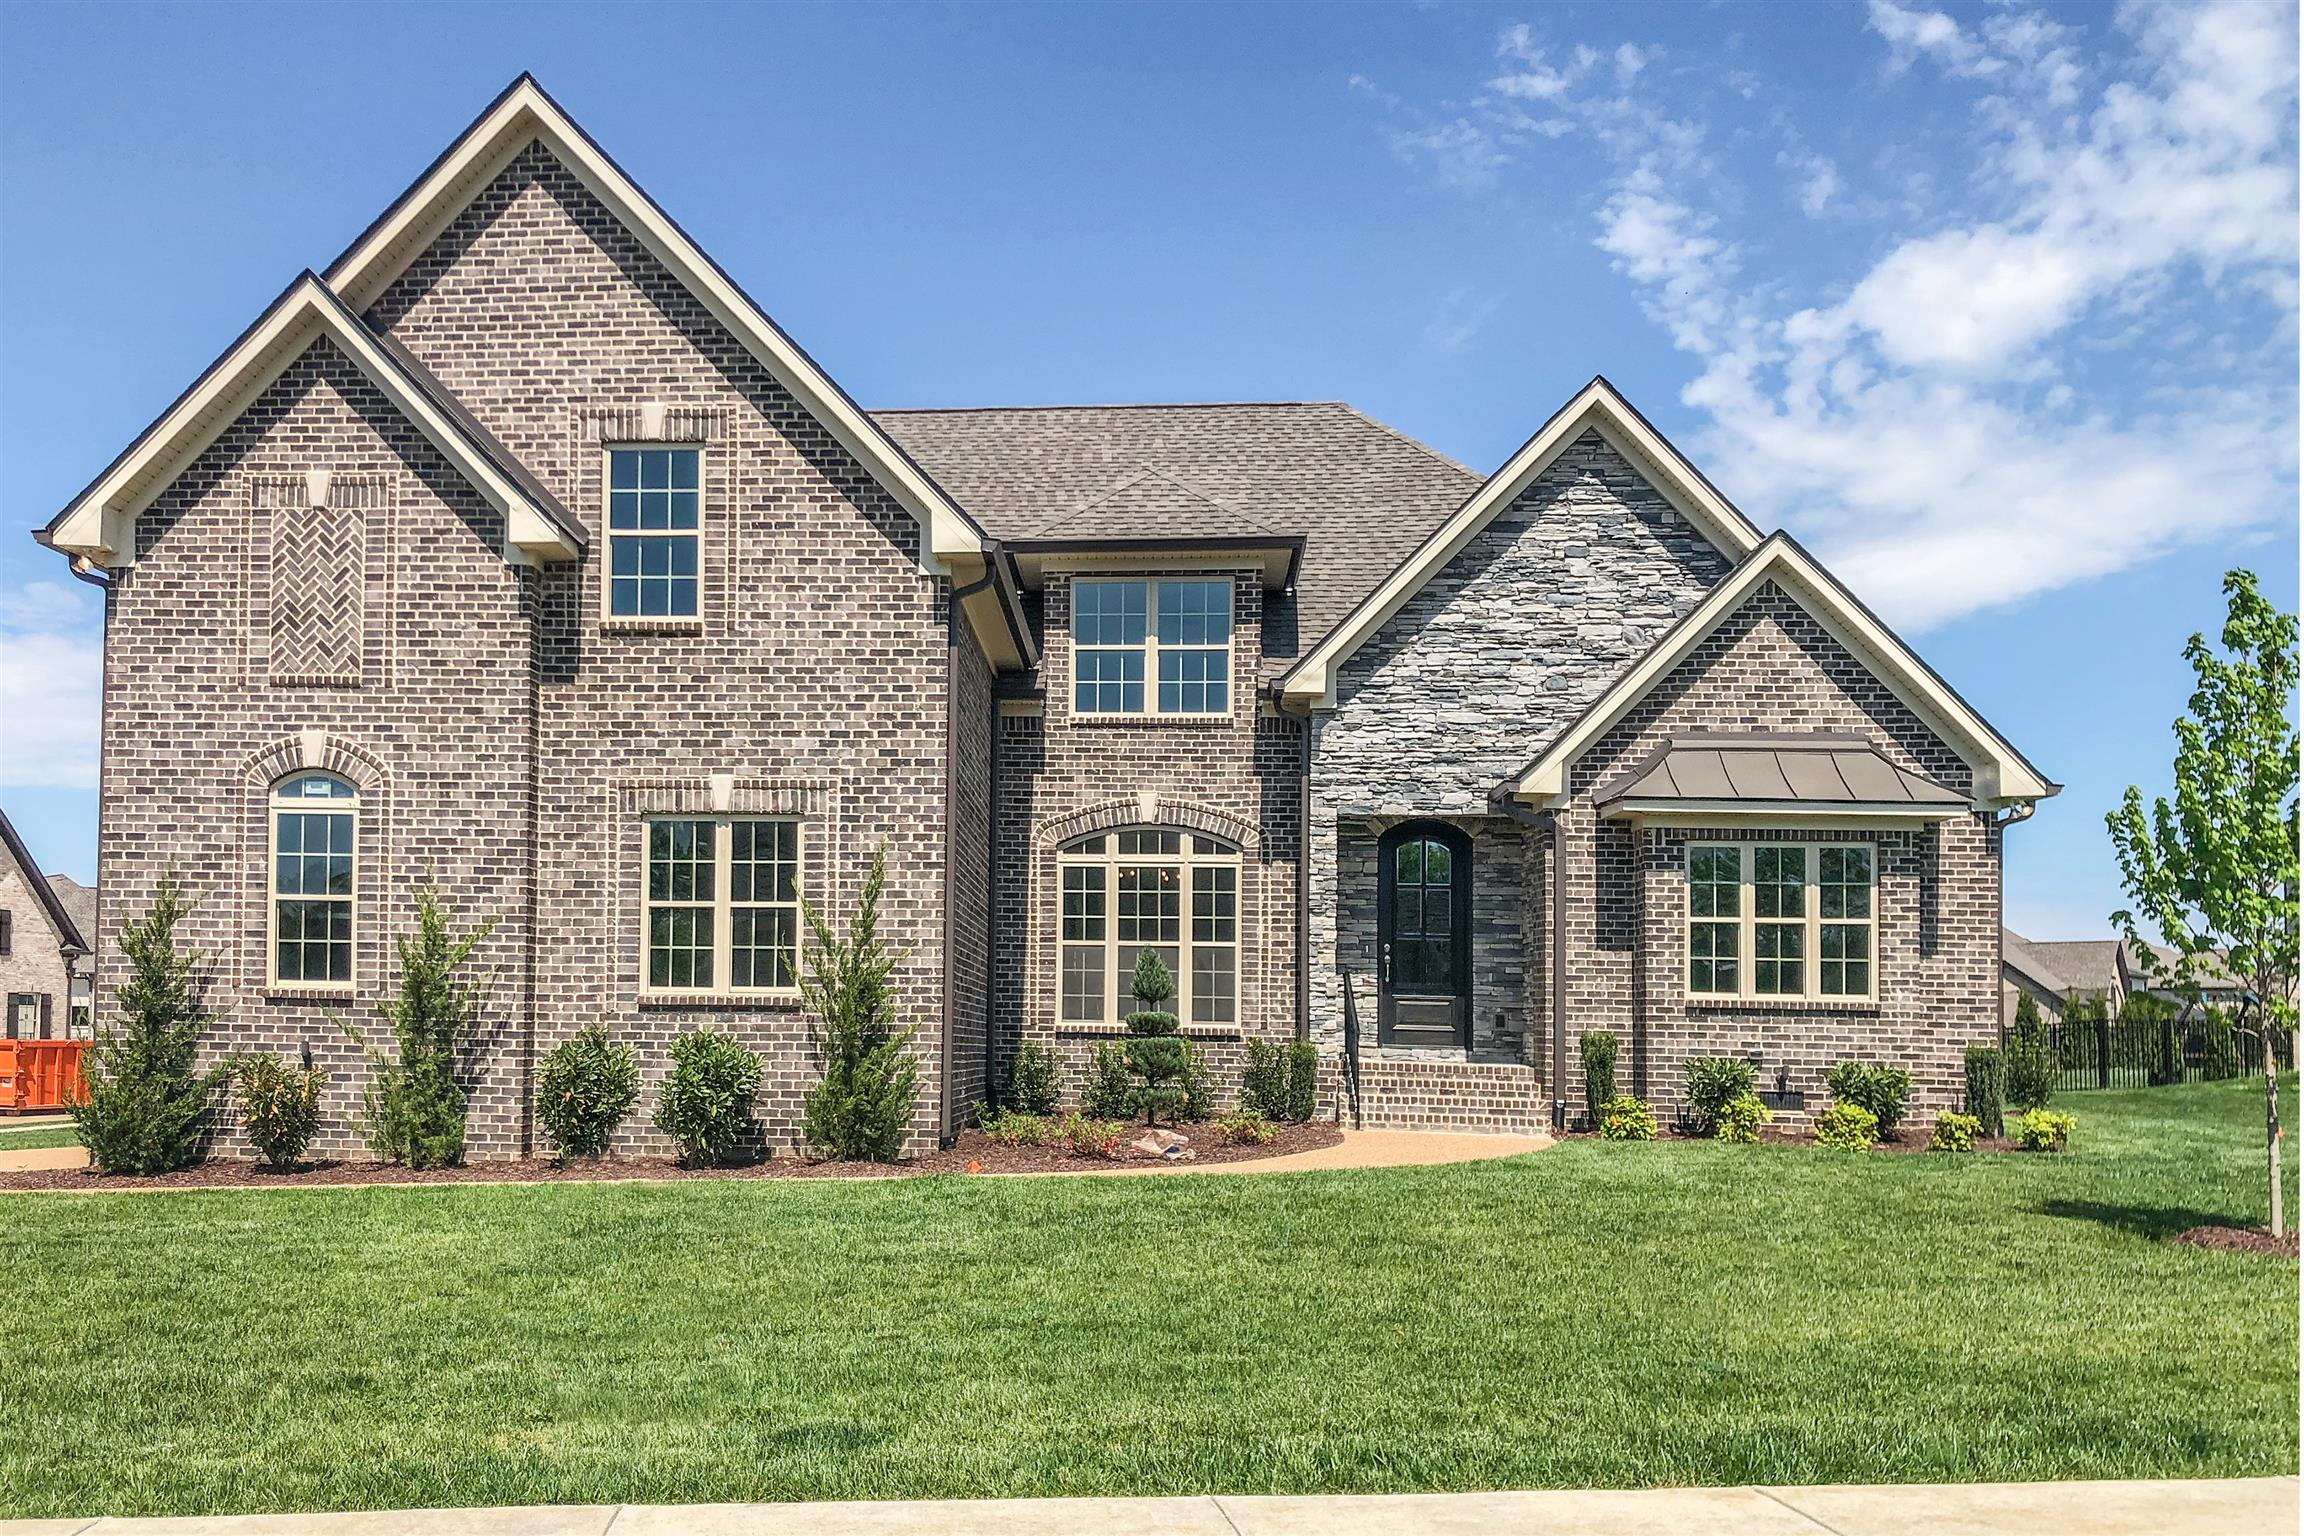 2024 Autumn Ridge Way (Lot 274), Spring Hill, Tennessee